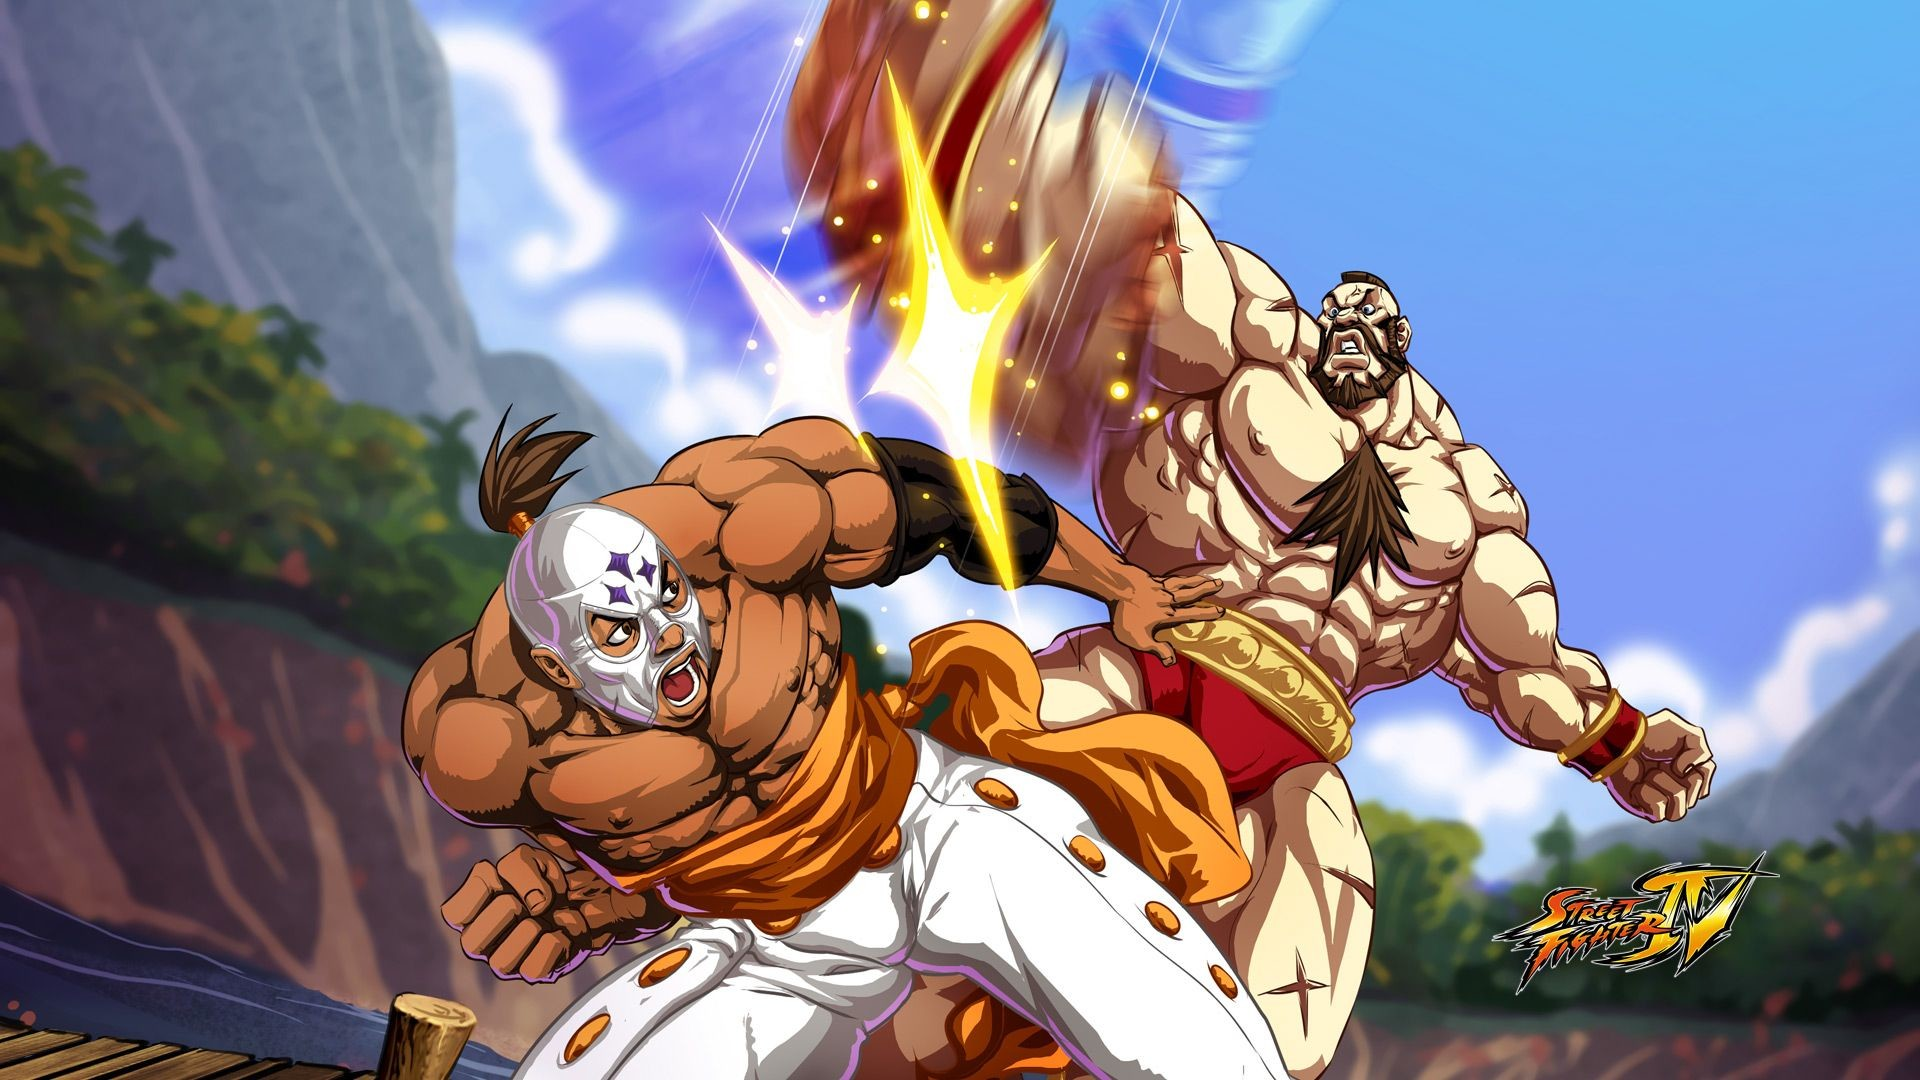 Res: 1920x1080, Preview Street Fighter Wallpapers